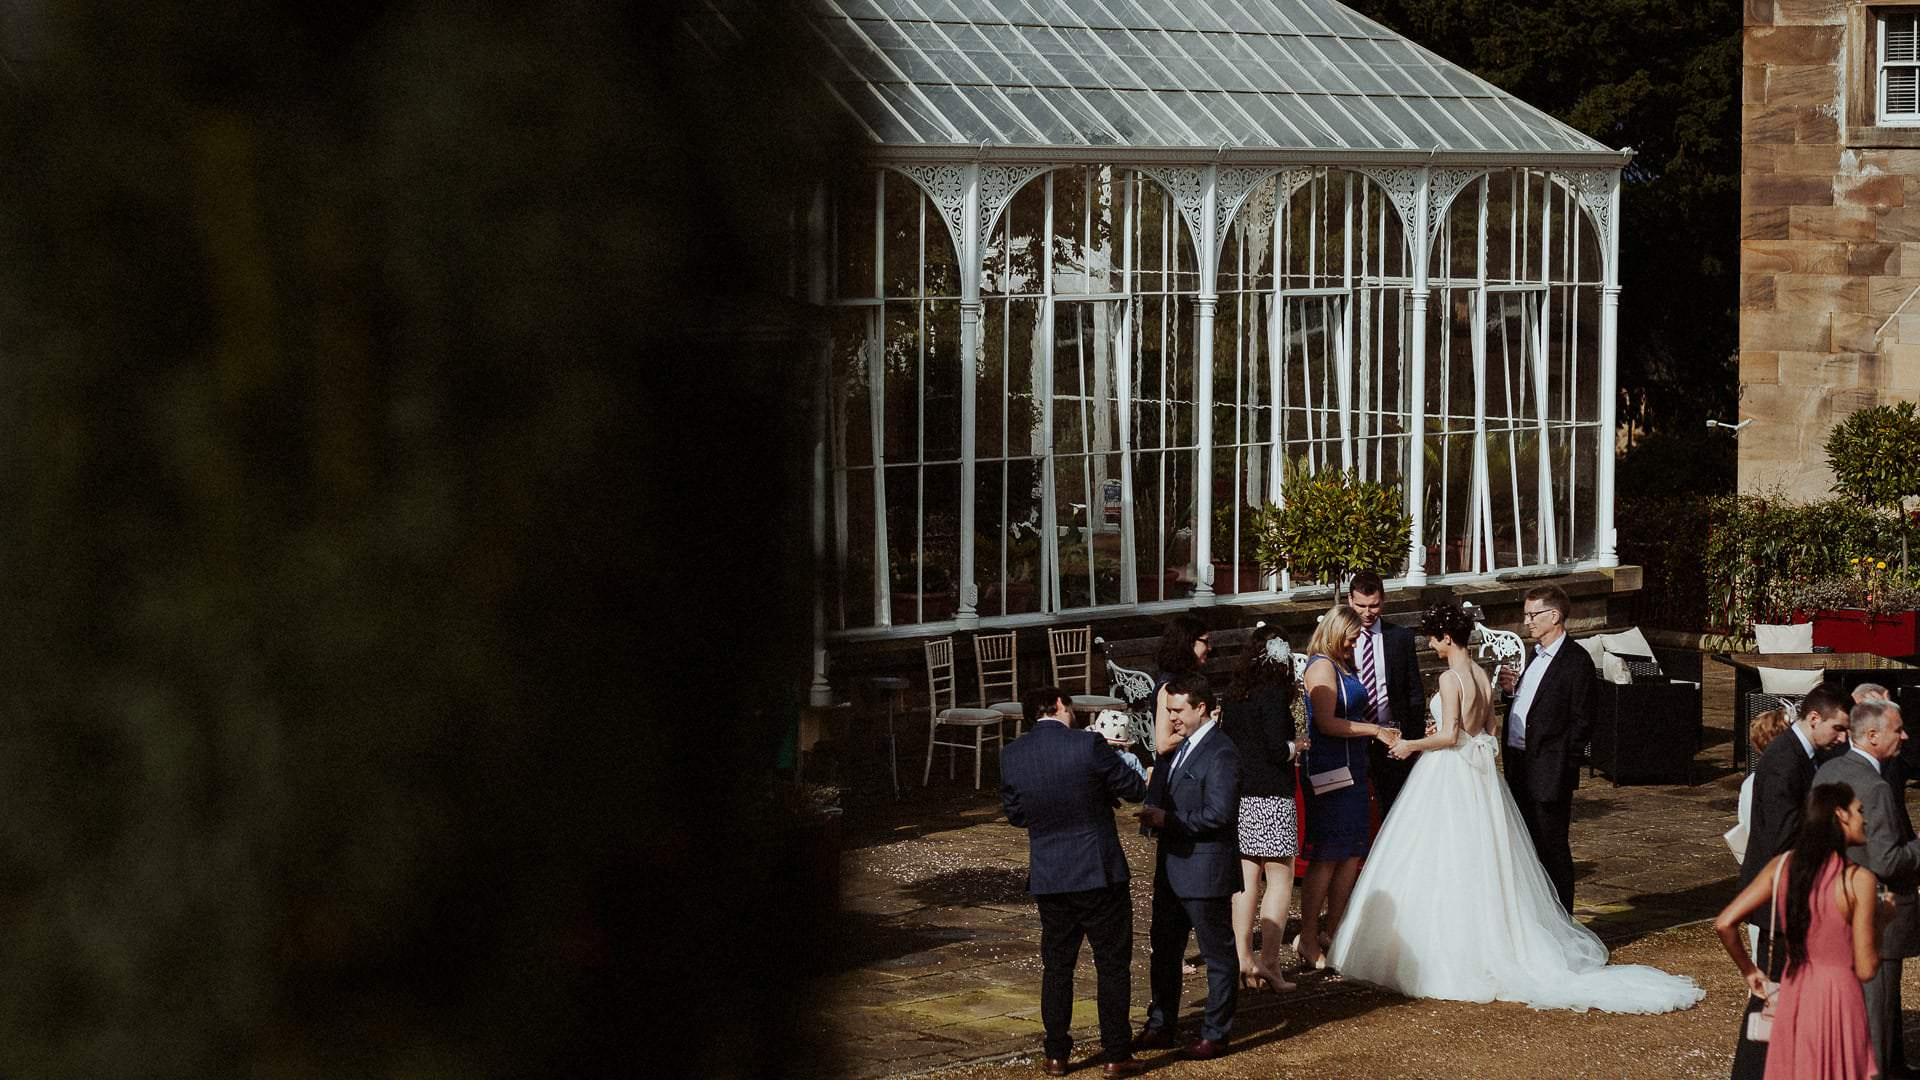 Manchester Wedding Photographer Feminist Wedding Wentworth Castle Gardens 0130